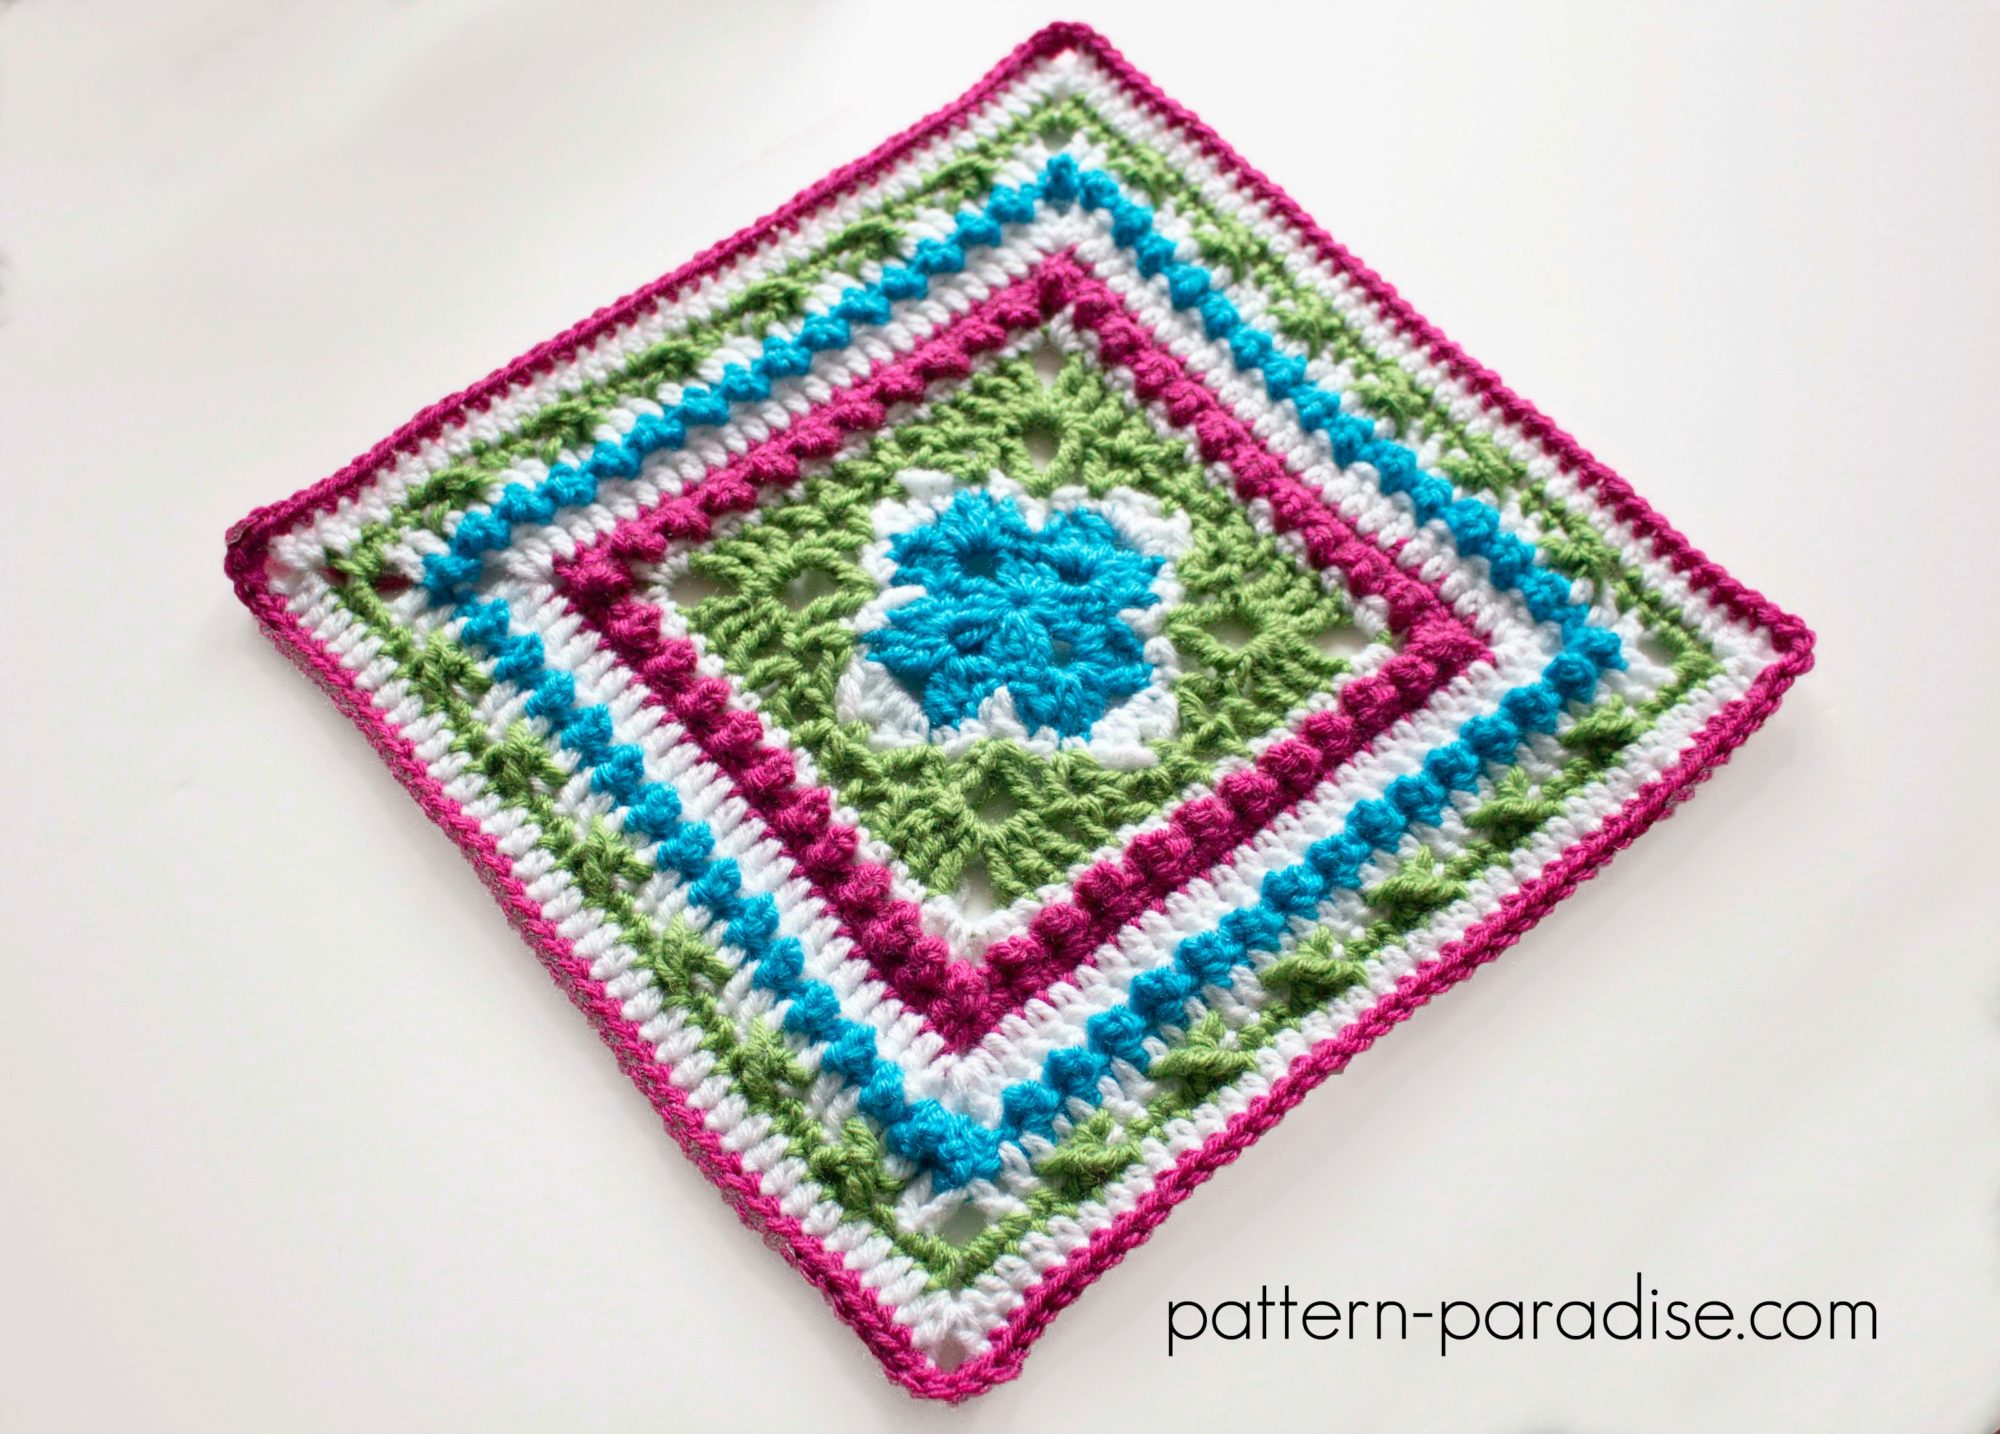 Crochet Patterns English : Free Crochet Pattern: English Garden Afghan Square Pattern Paradise